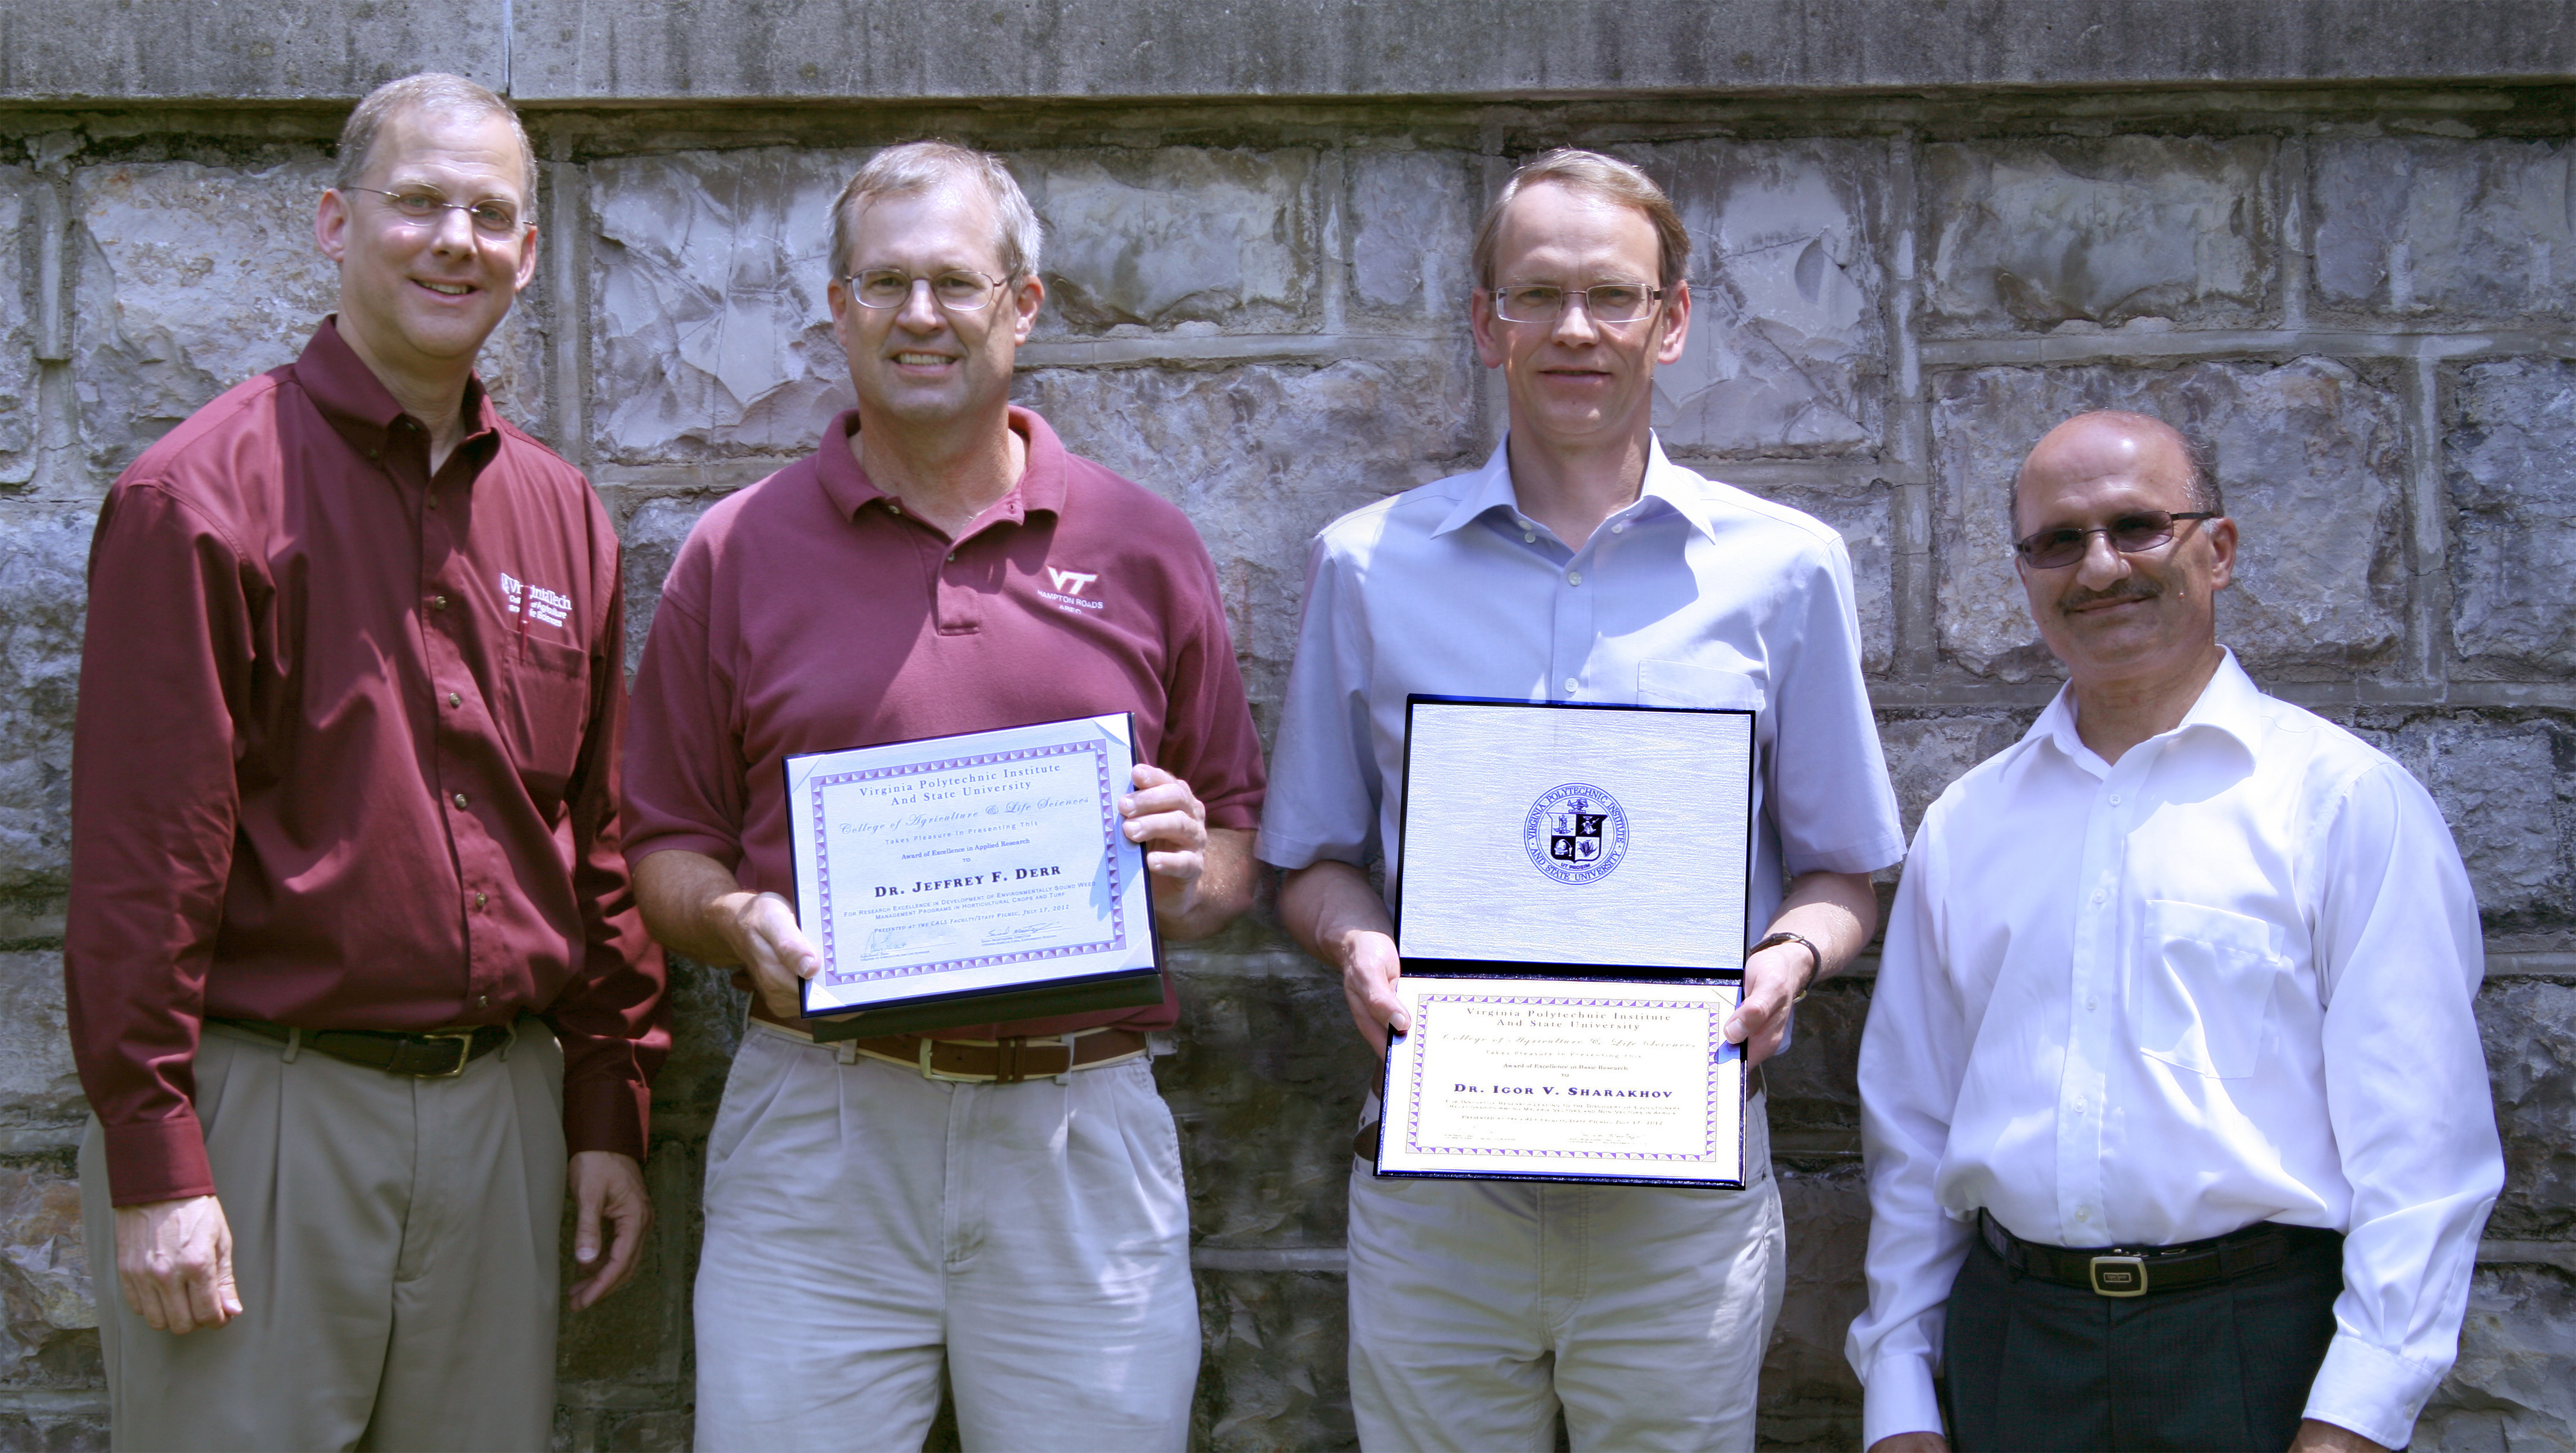 Pictured left to right: Alan Grant, Jeffrey Derr, Igor Sharakhov, and Saied Mostaghimi.  Jeffrey Derr and Igor Sharakhov hold their awards.